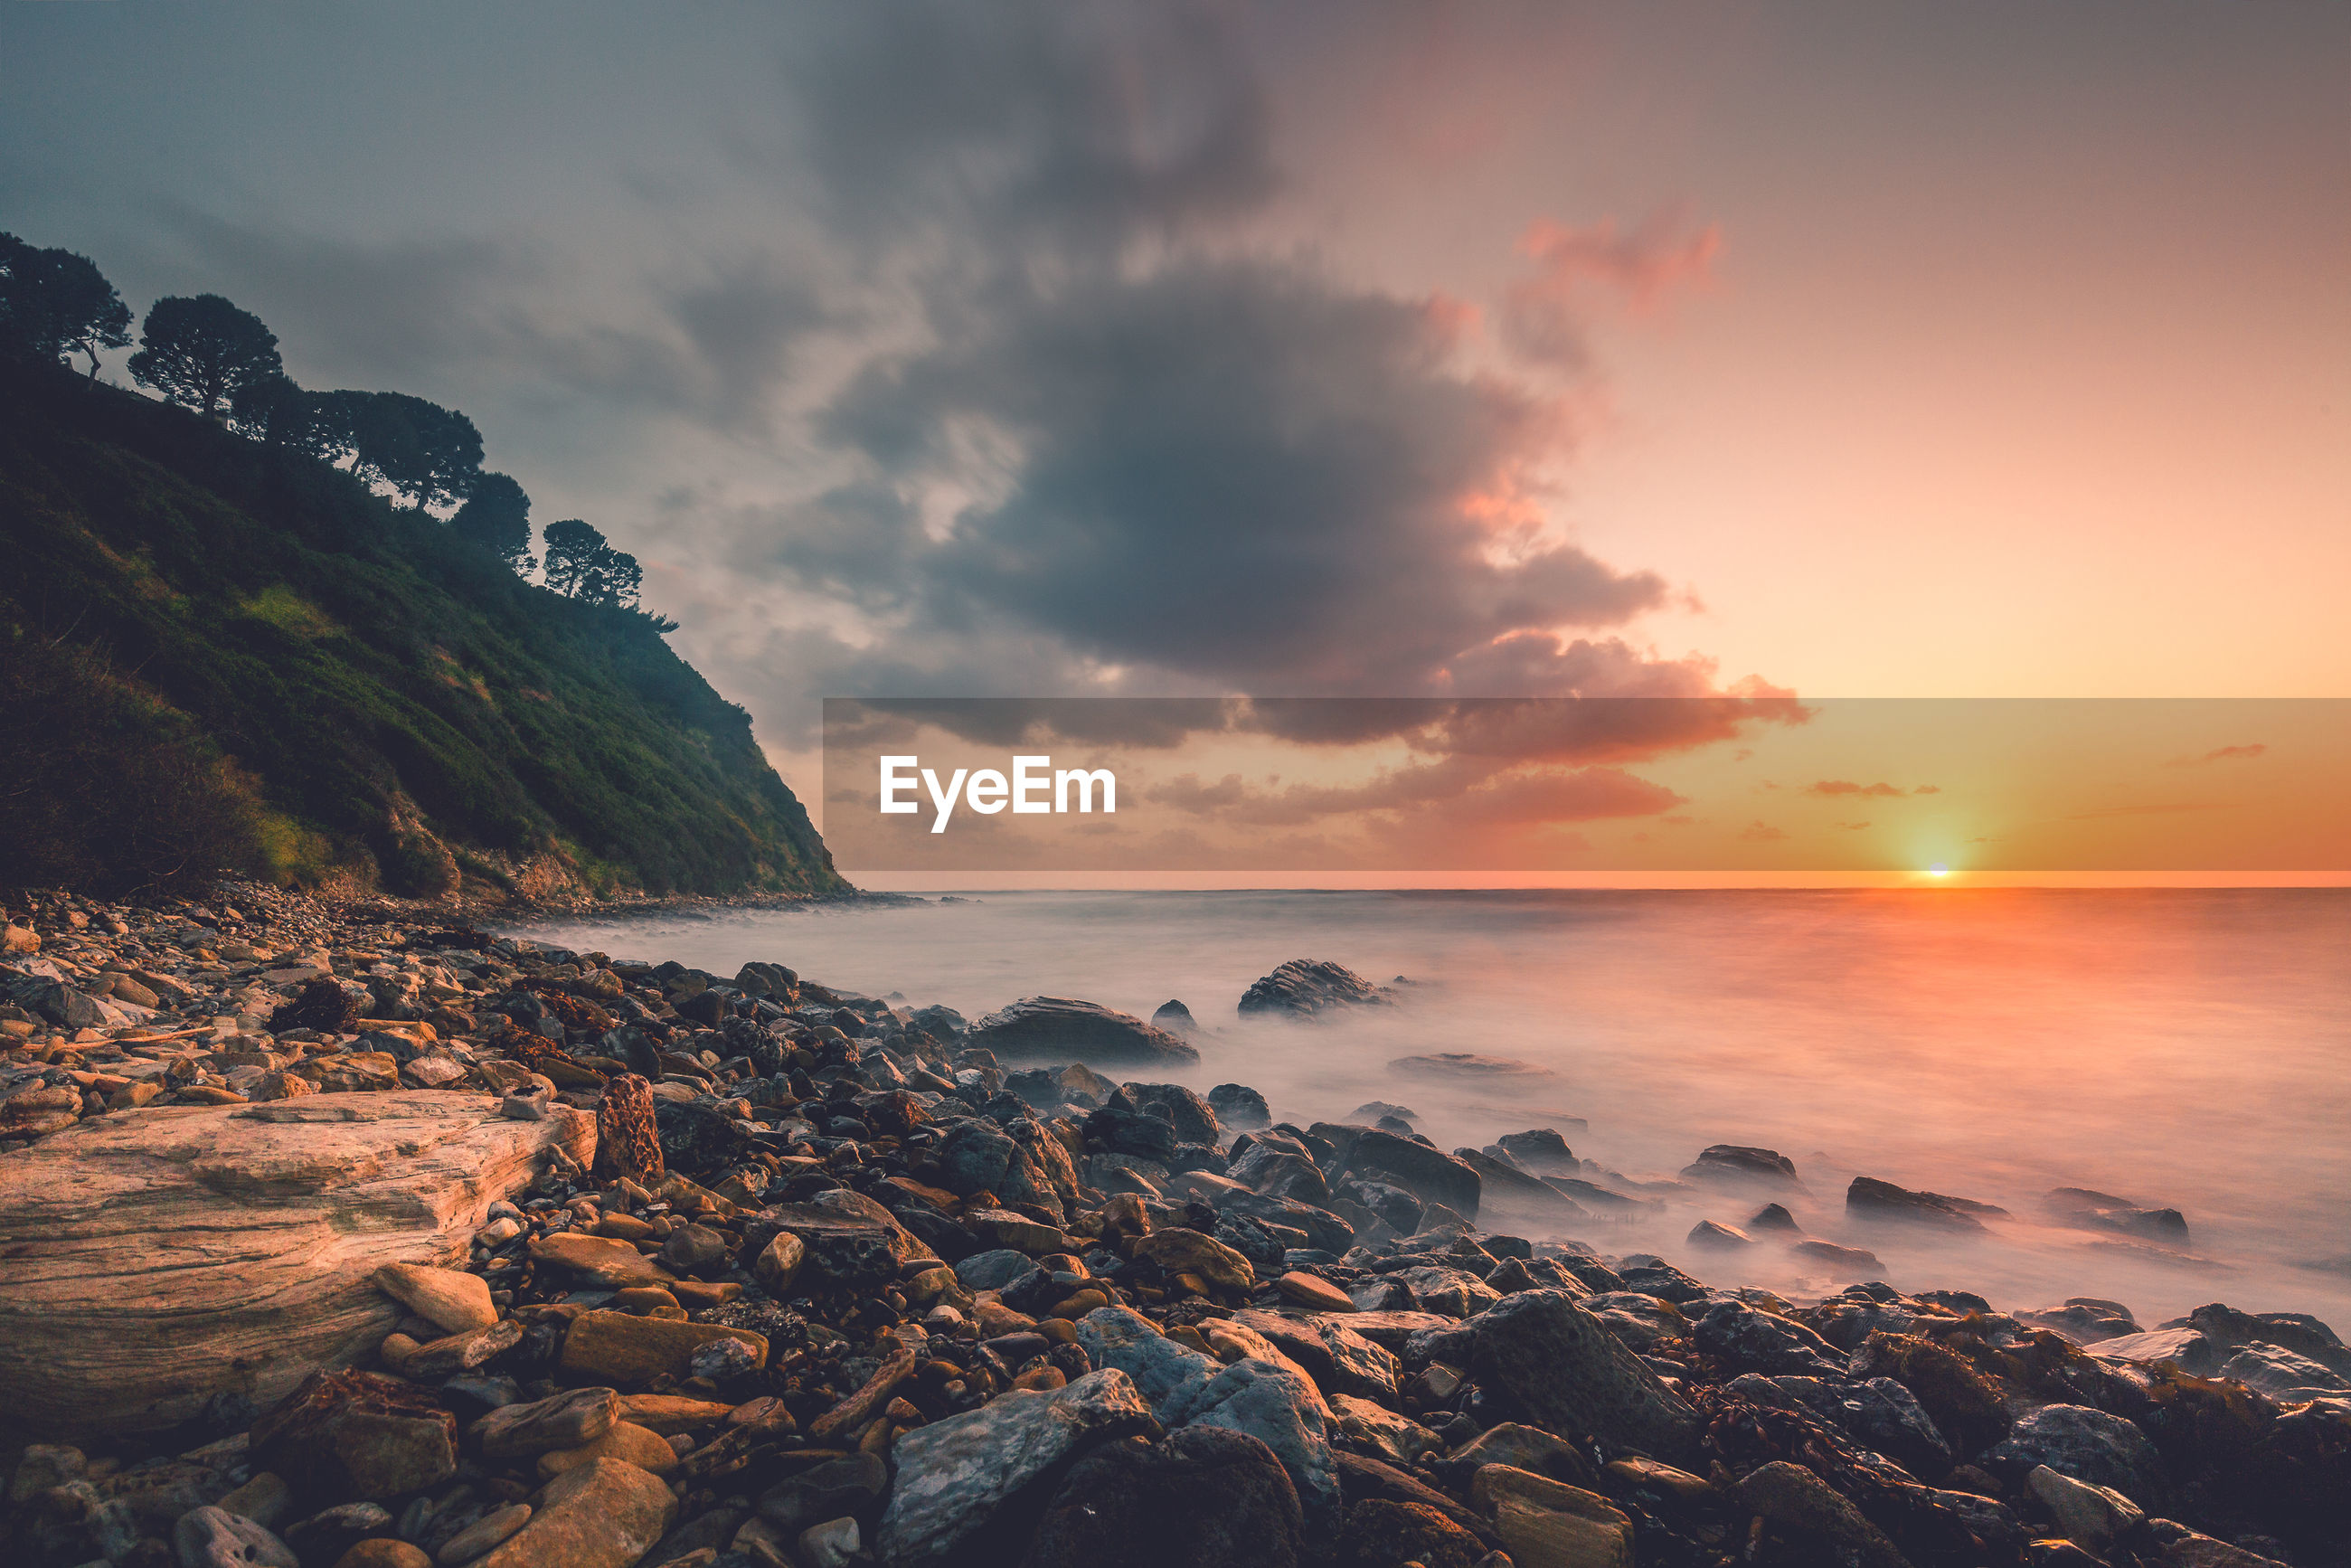 Scenic view of sunset at rocky shore by sea against sky